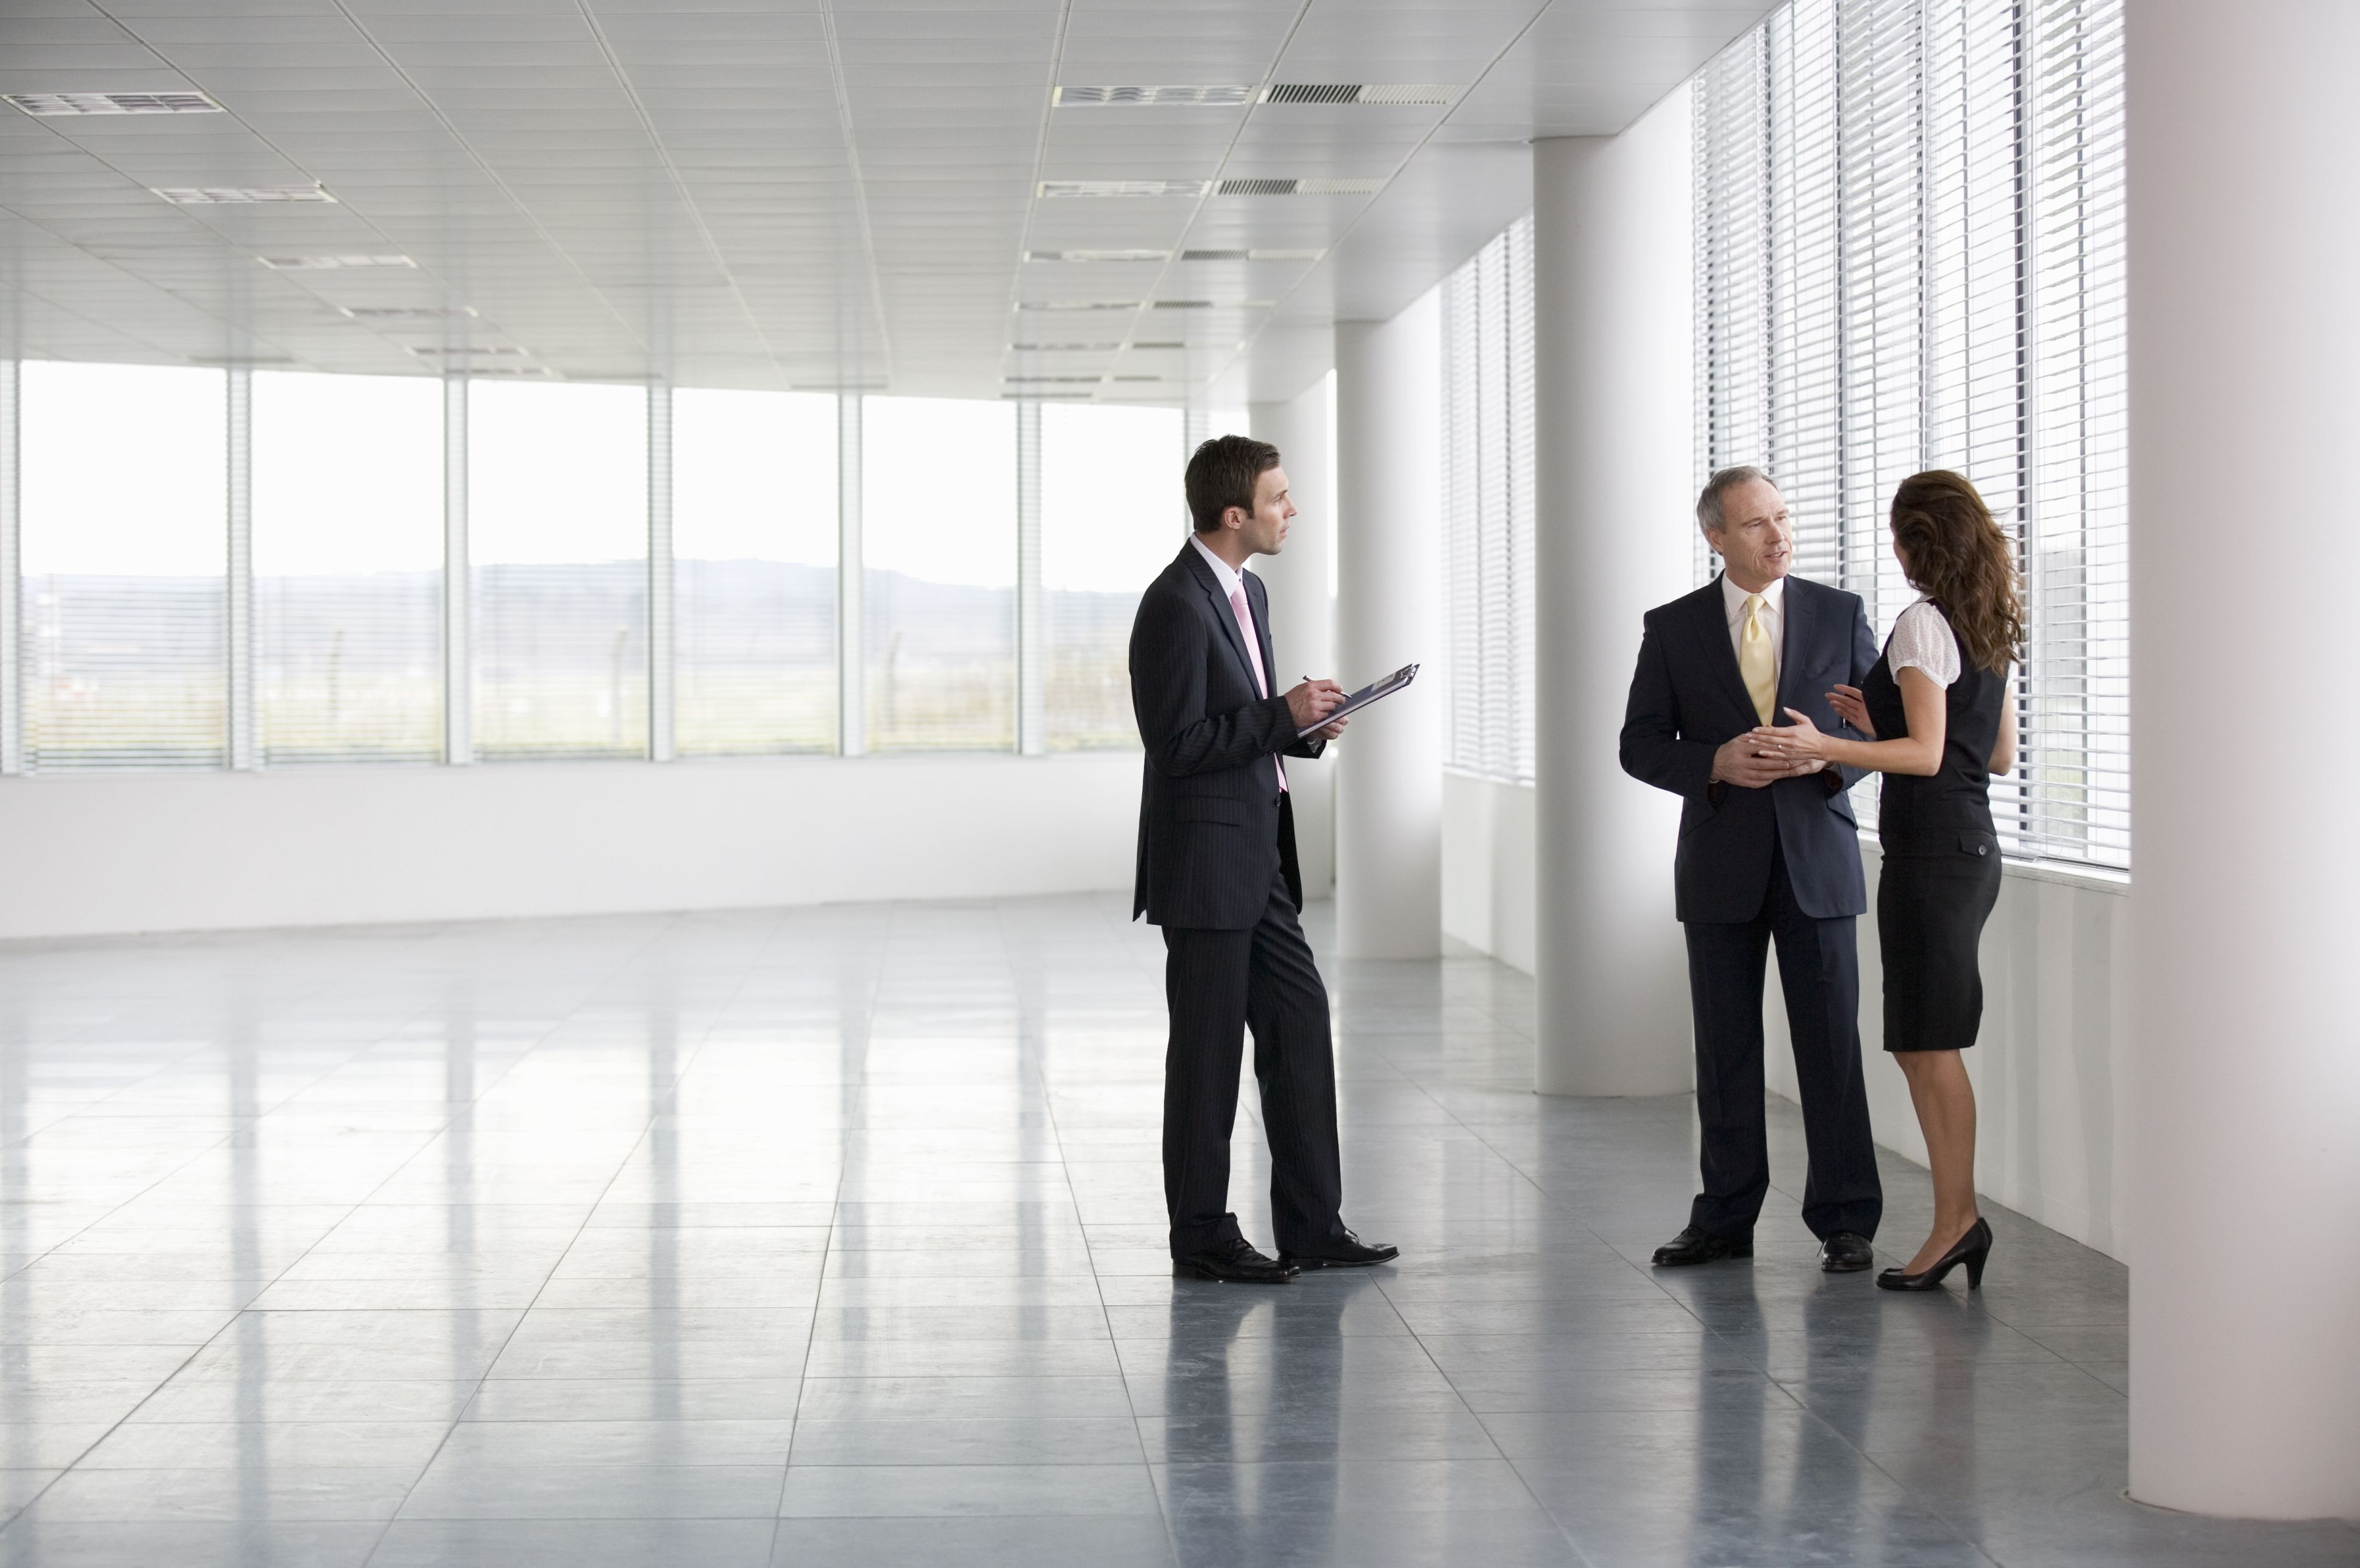 Leasing a BusinessTo Lease or Buy Commercial Space?